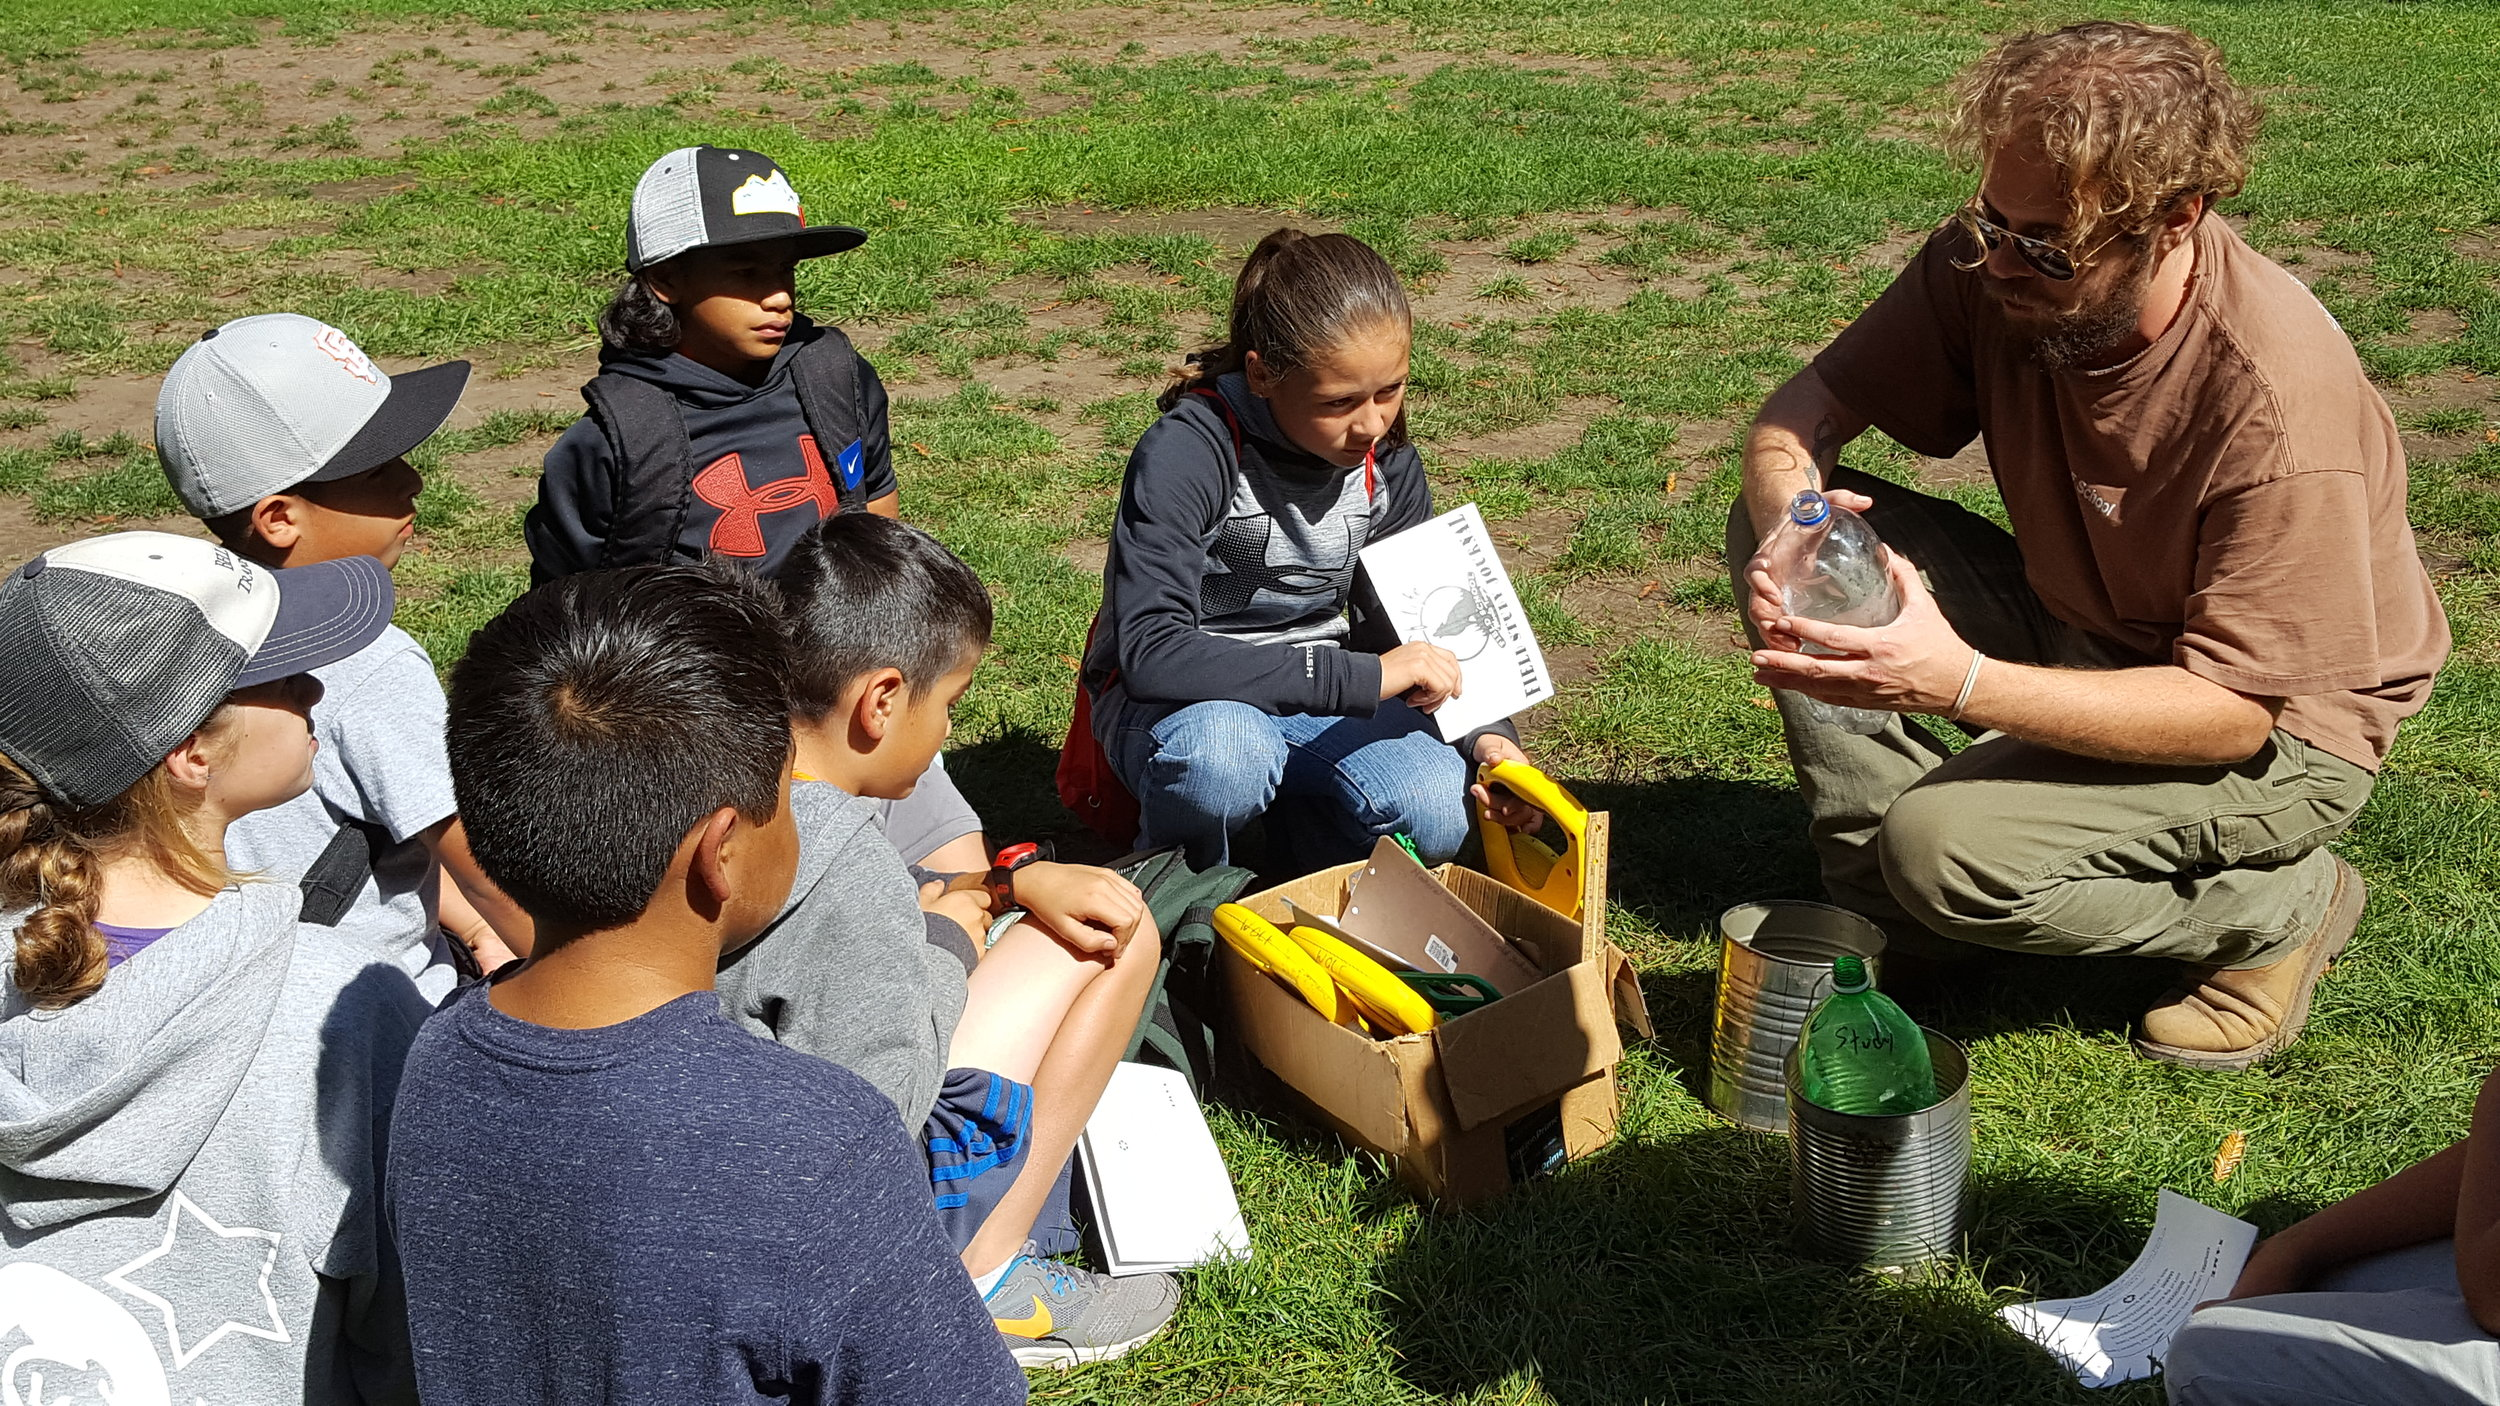 WOLF School Program Director Chris Soriano, aka Otter, explains usage of scientific equipment before students participate in redwood study.